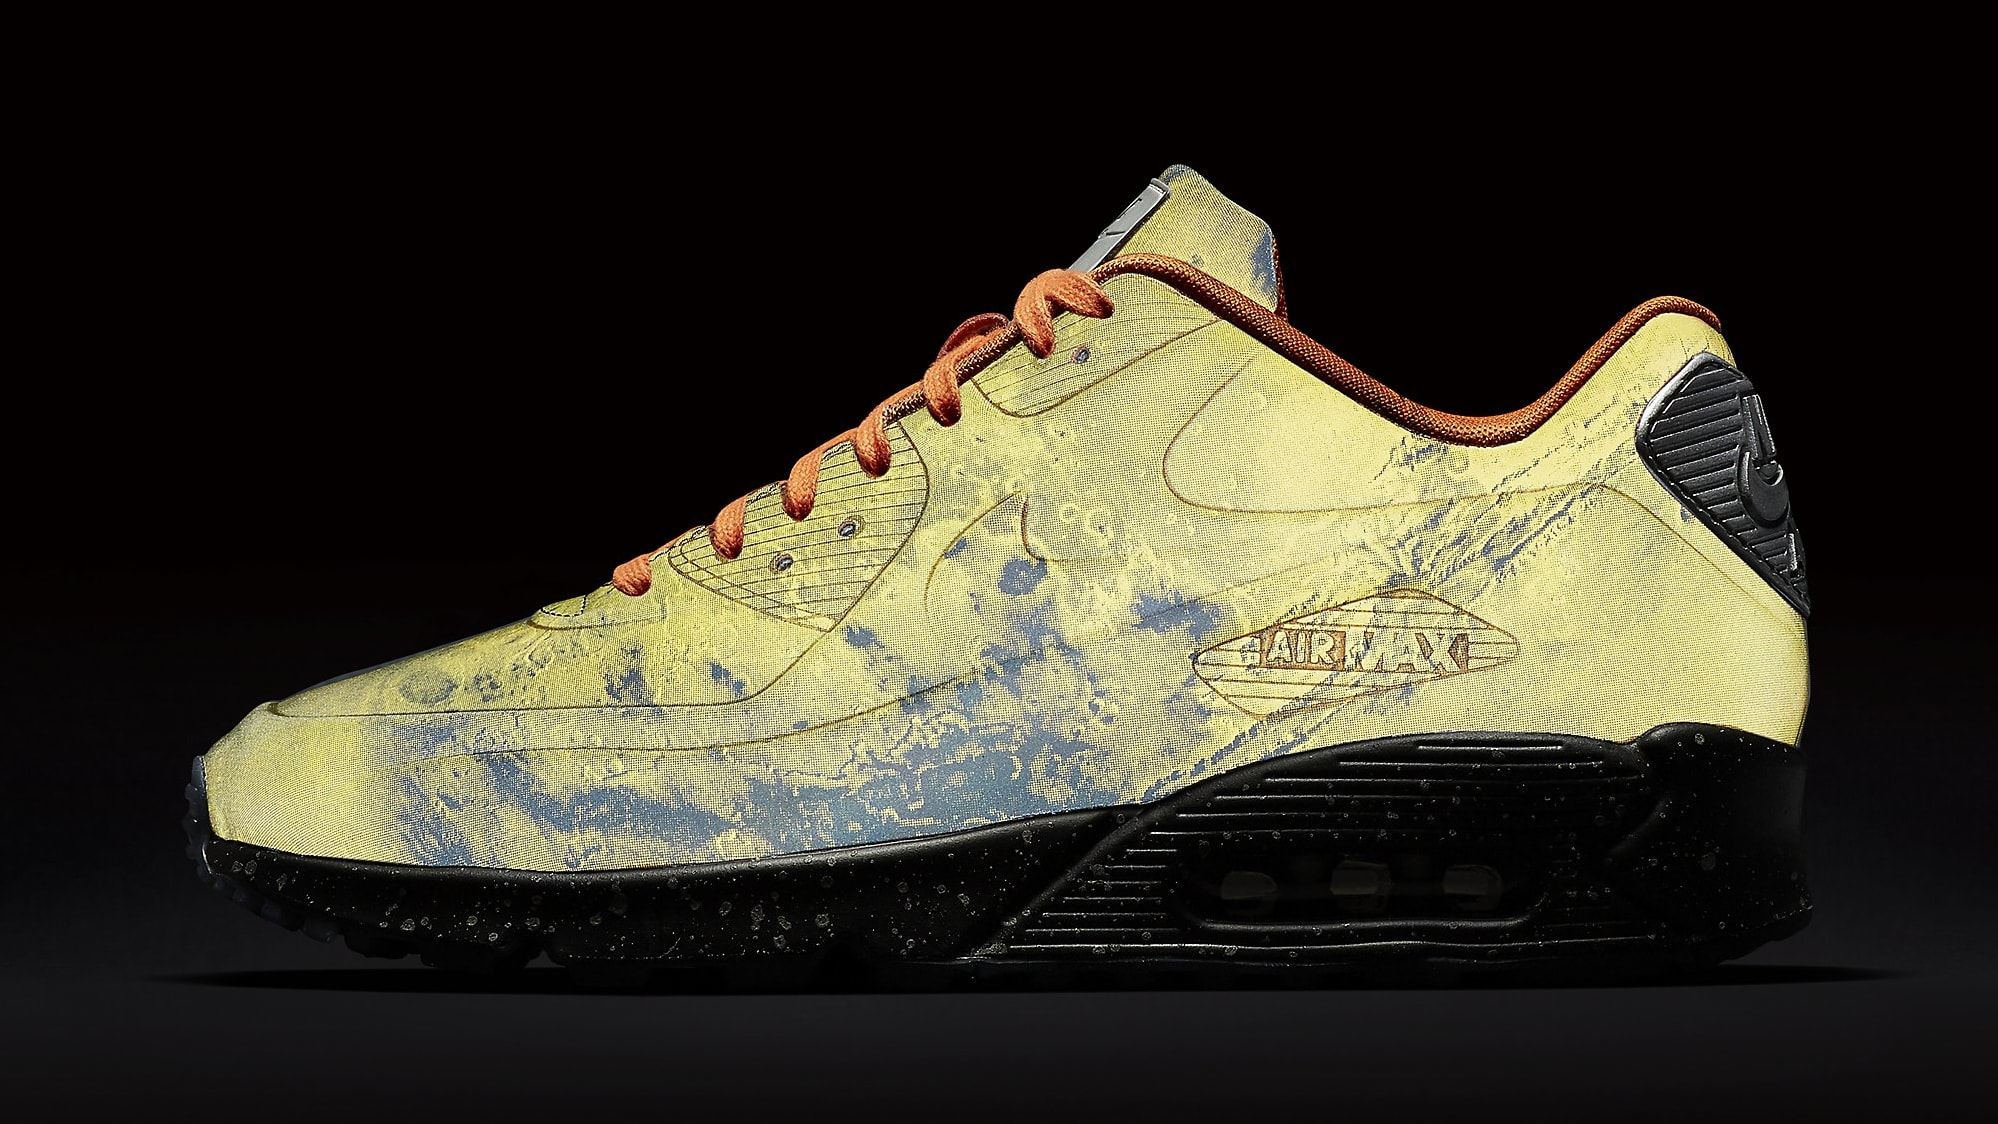 ad7605f6653 Nike Air Max 90 QS 'Mars Landing' Mars Stone/Magma Orange Release Date |  Sole Collector